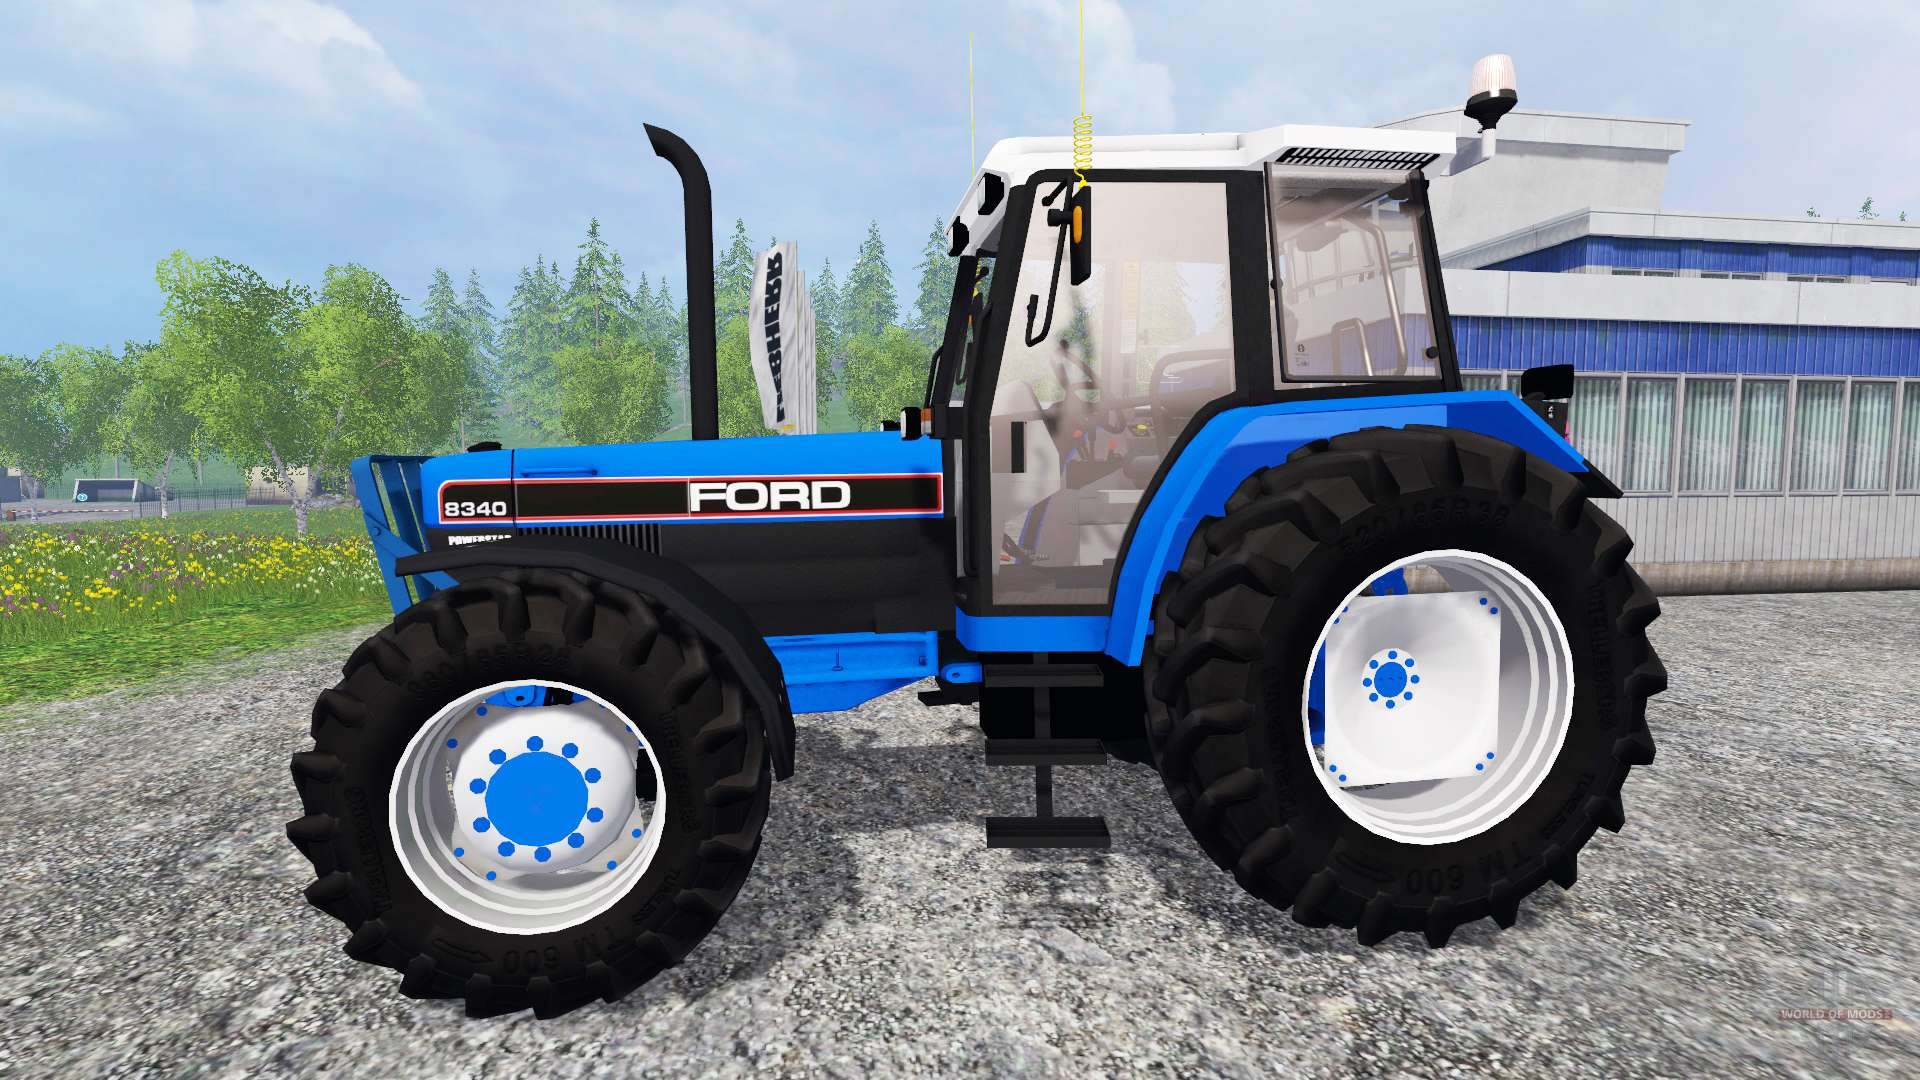 189577 FarmingSimulator2015Game 2016 02 23 00 43 12 329 8340 v1 2 for farming simulator 2015 ford tractor 6640 wiring diagram at mifinder.co